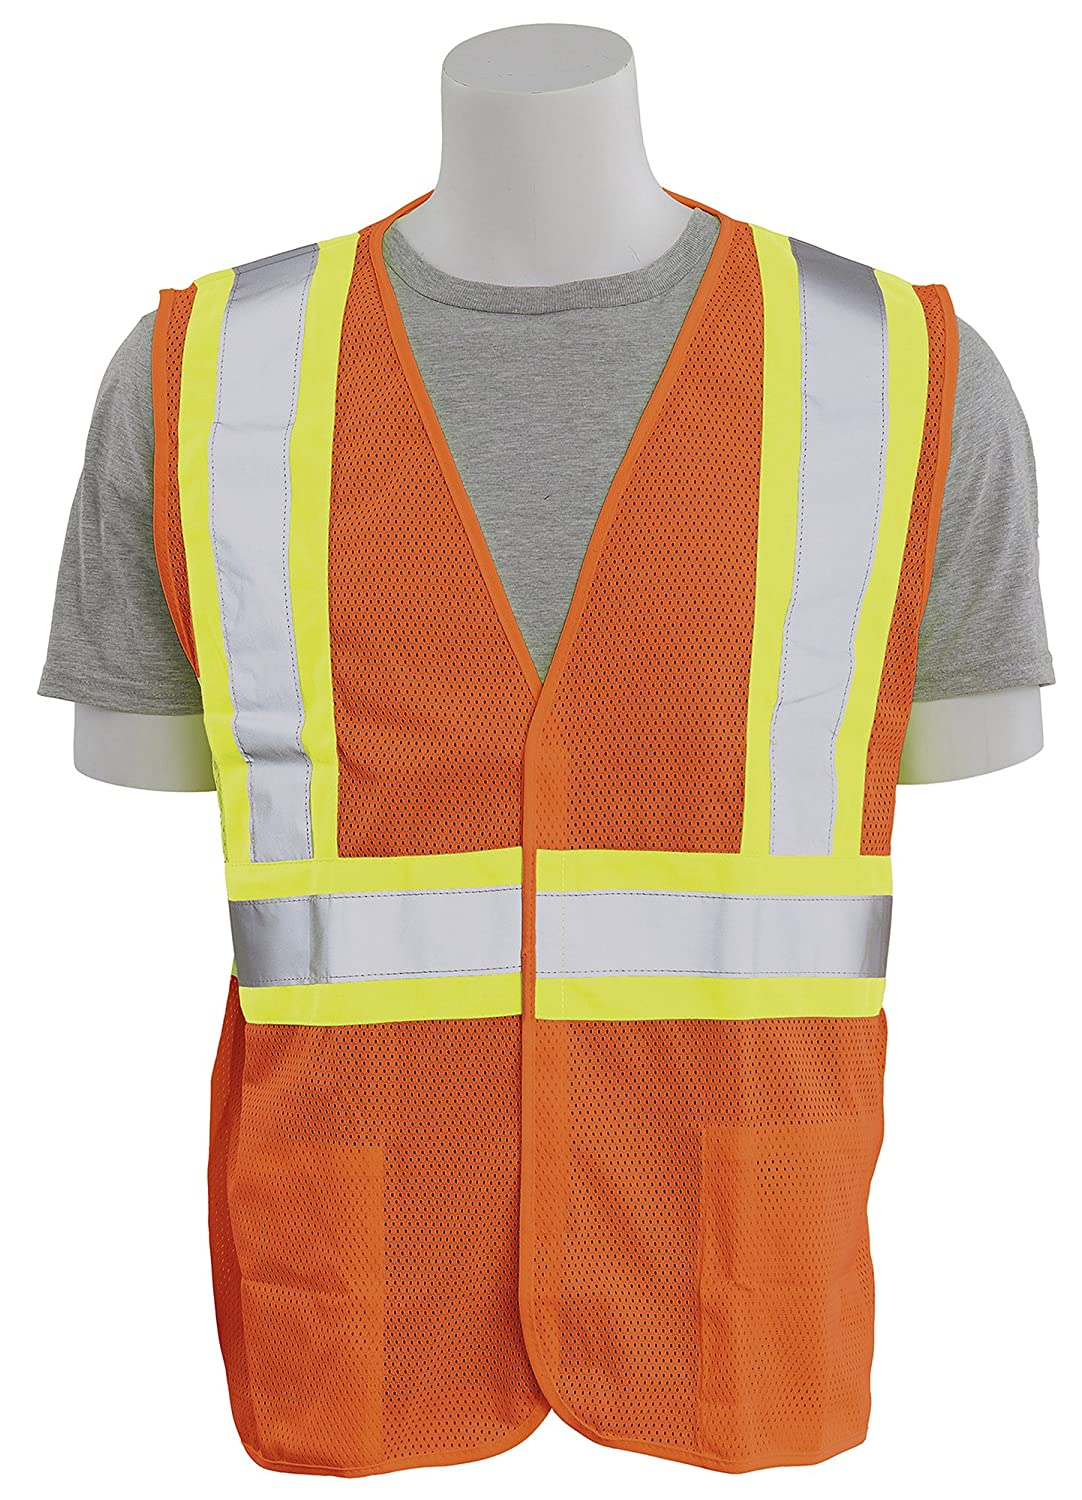 5X-Large Orange ERB 63513 S382T Tall Vest Class 2